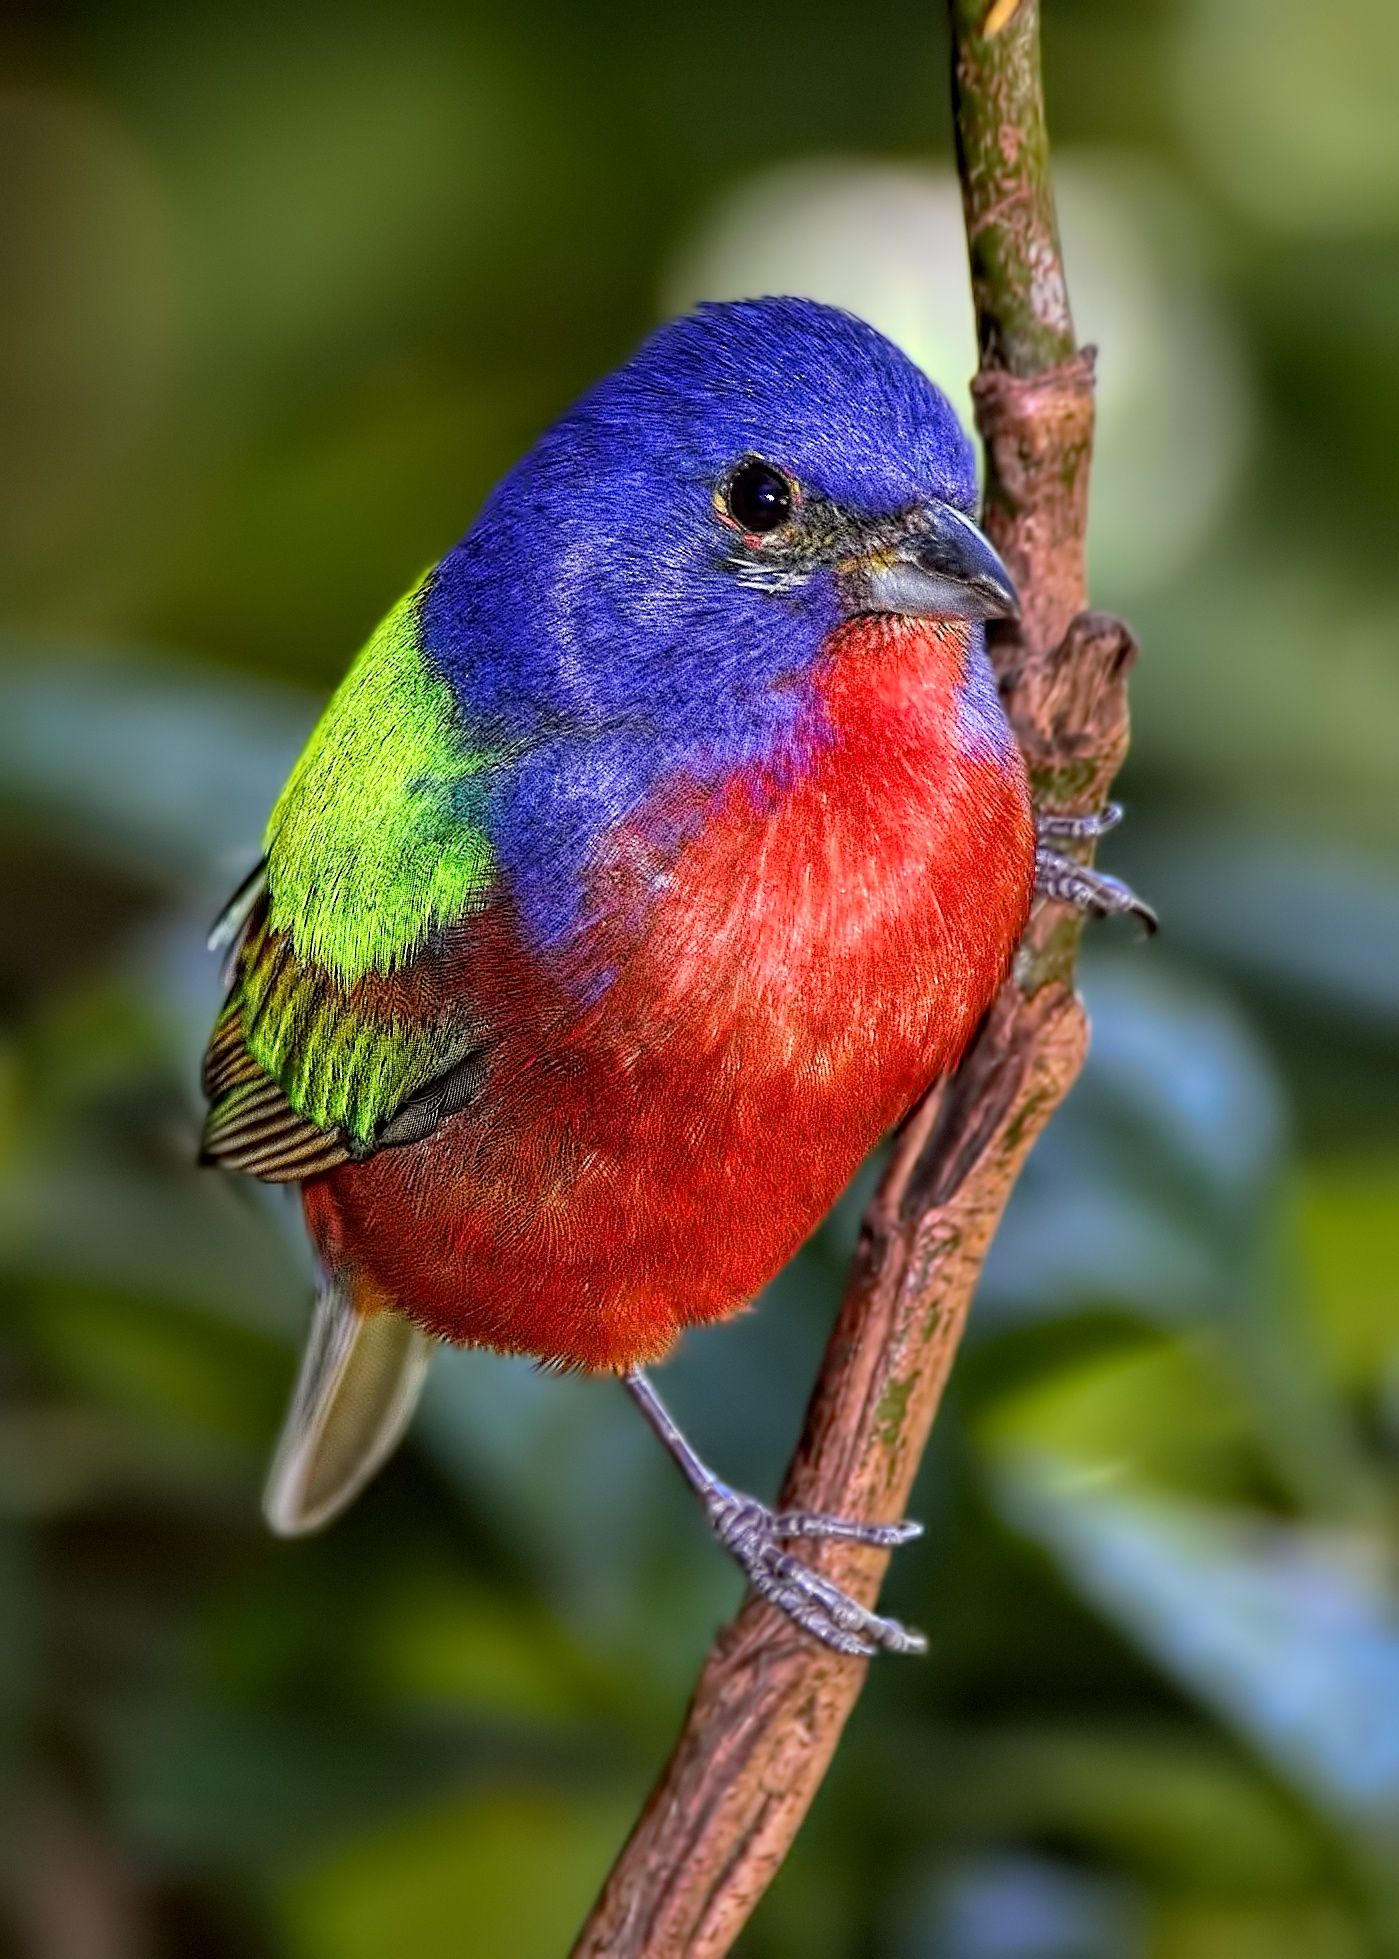 the atlanta area is a little to far inland for the painted bunting